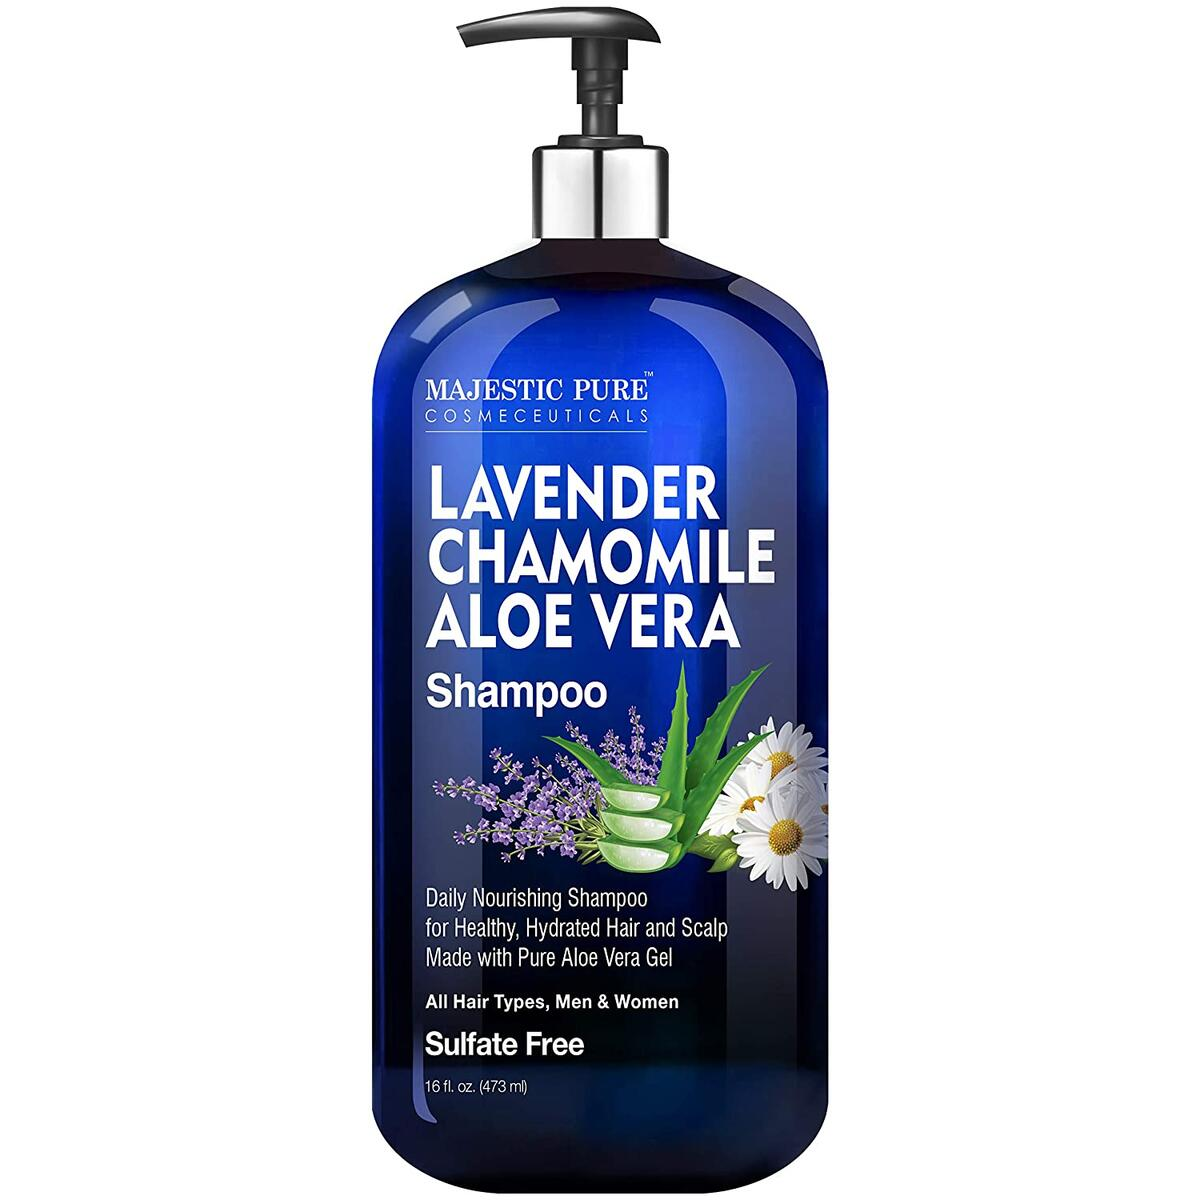 Lavender Chamomile Aloe Vera Shampoo - Cleansing, Hydrating, Nourishing, Sulfate Free - Daily Shampoo for Men and Women, All Hair Types - Promotes Scalp Health - 16 fl oz